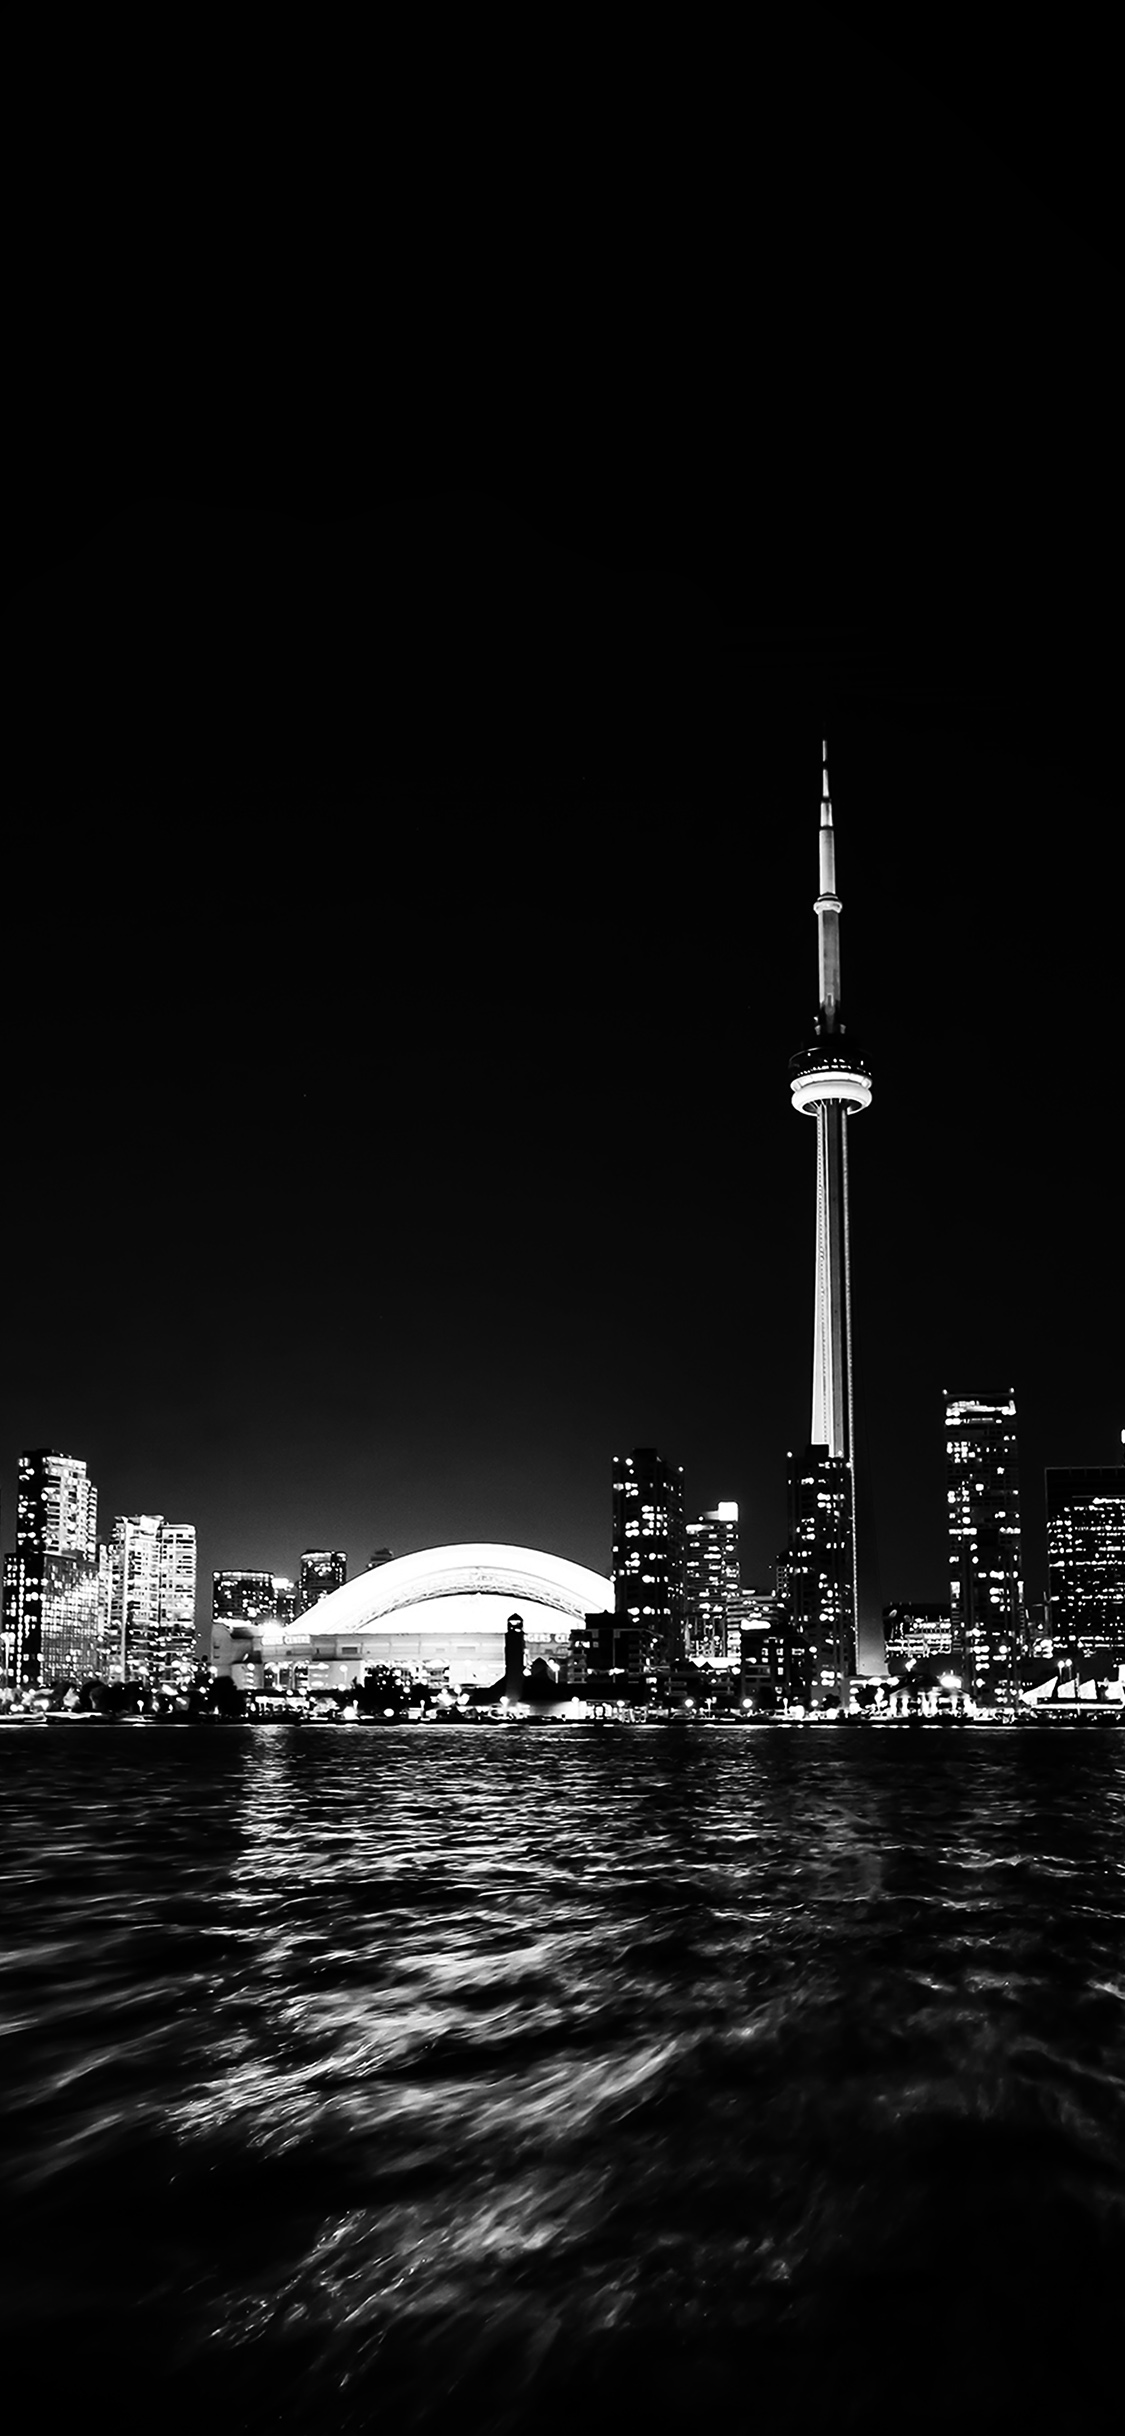 iPhonexpapers.com-Apple-iPhone-wallpaper-mt45-toronto-city-night-missing-tower-dark-cityview-bw